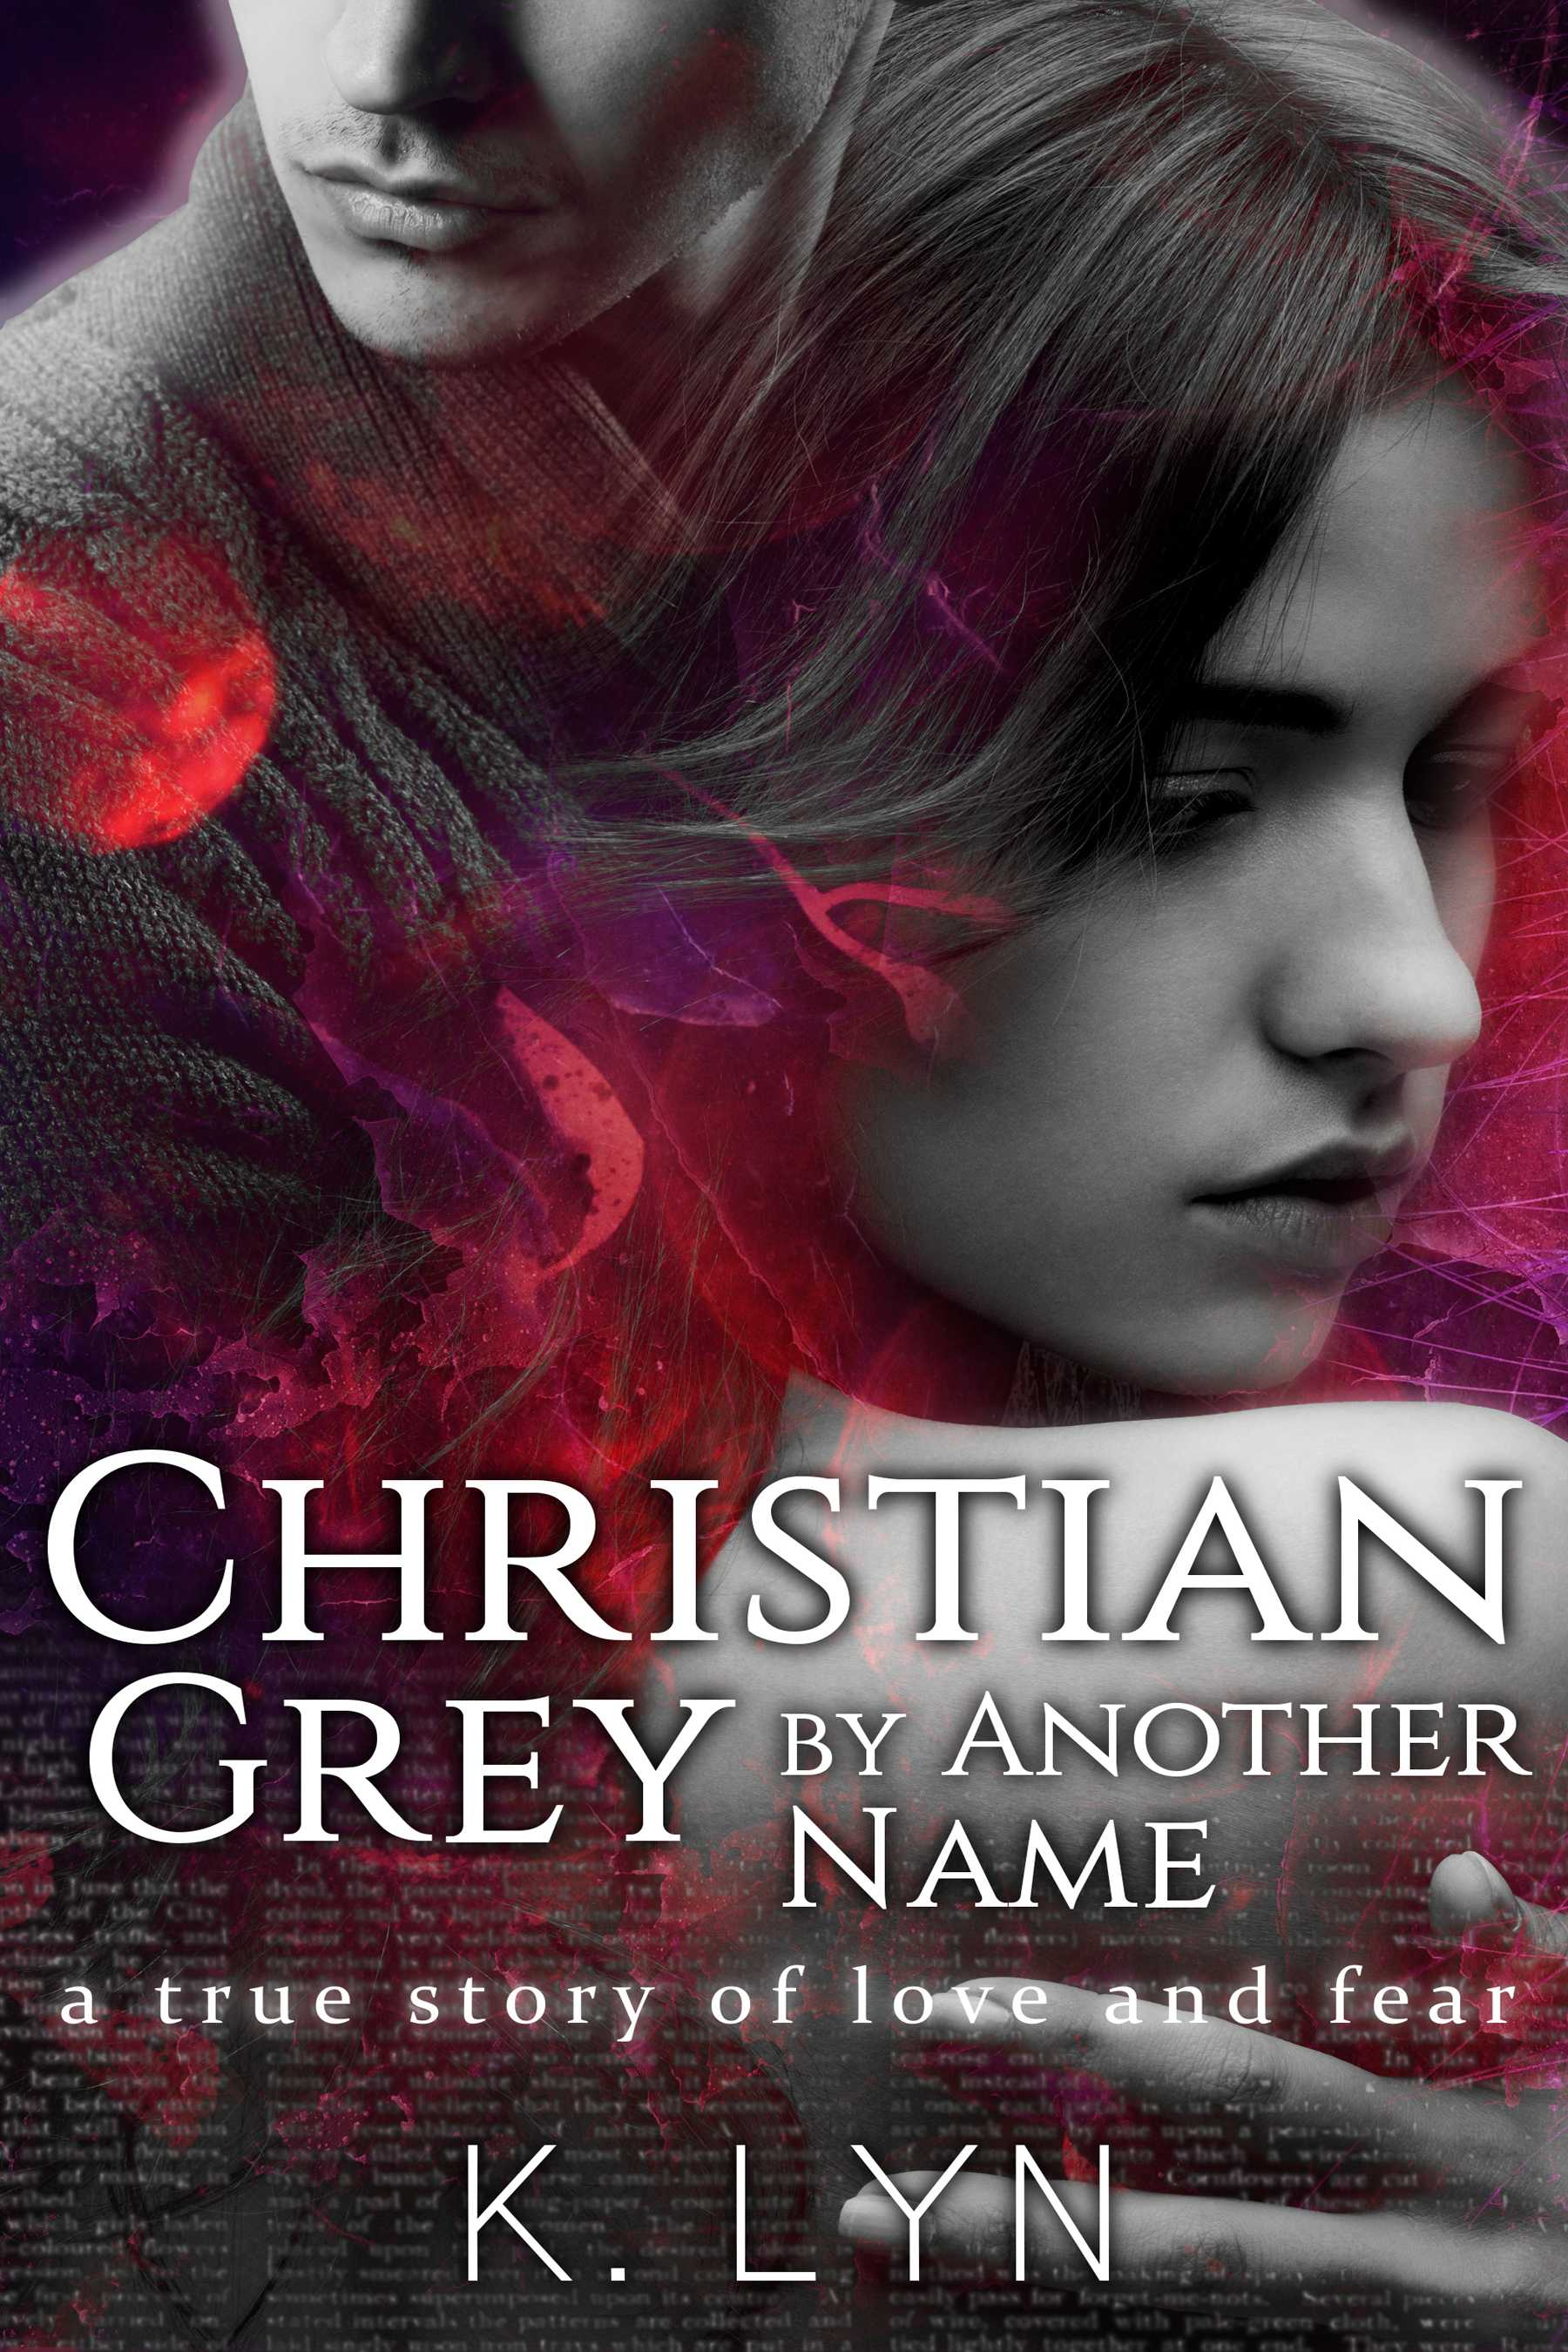 Christian Grey by Another Name